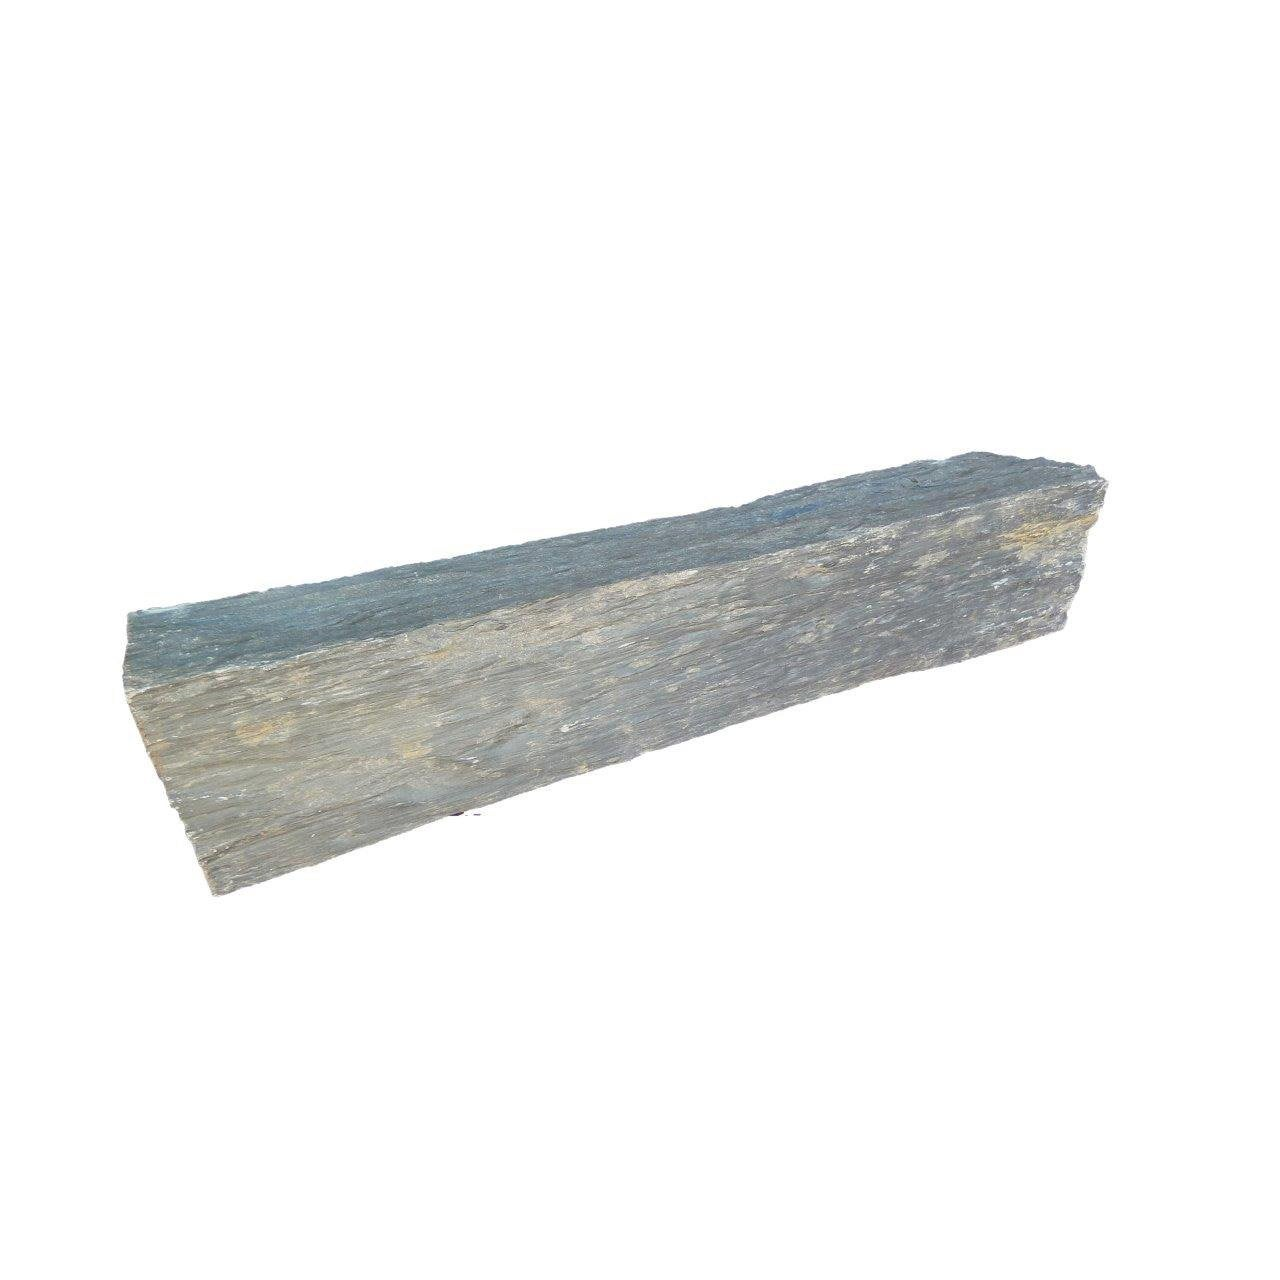 Bordure droite ardoise gris x cm leroy merlin - Bordure ardoise point p ...